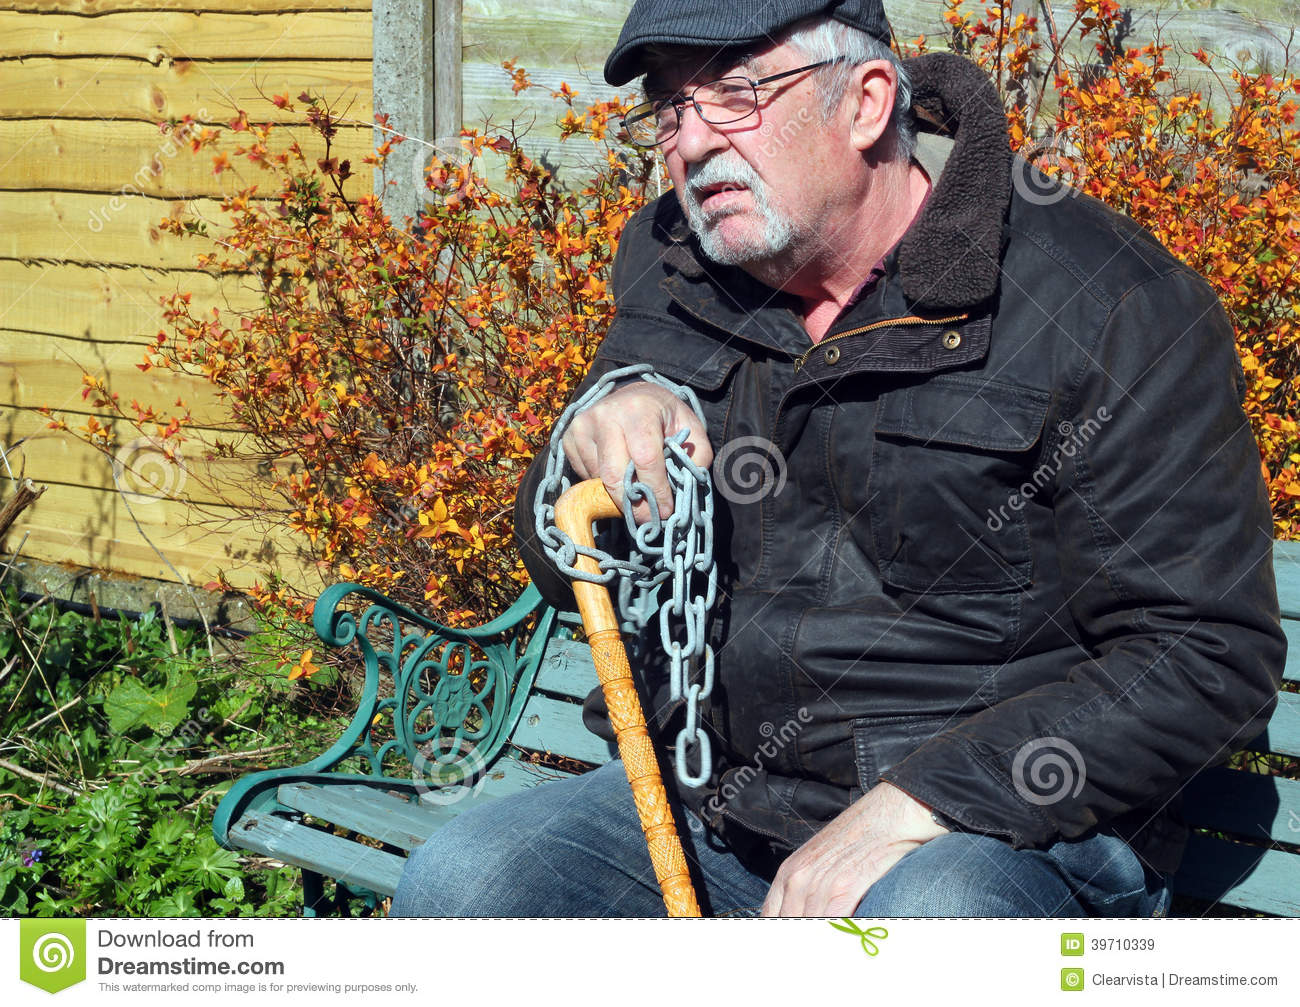 chained man sad old age and infirmity stock image image of ageing infirm 39710339. Black Bedroom Furniture Sets. Home Design Ideas